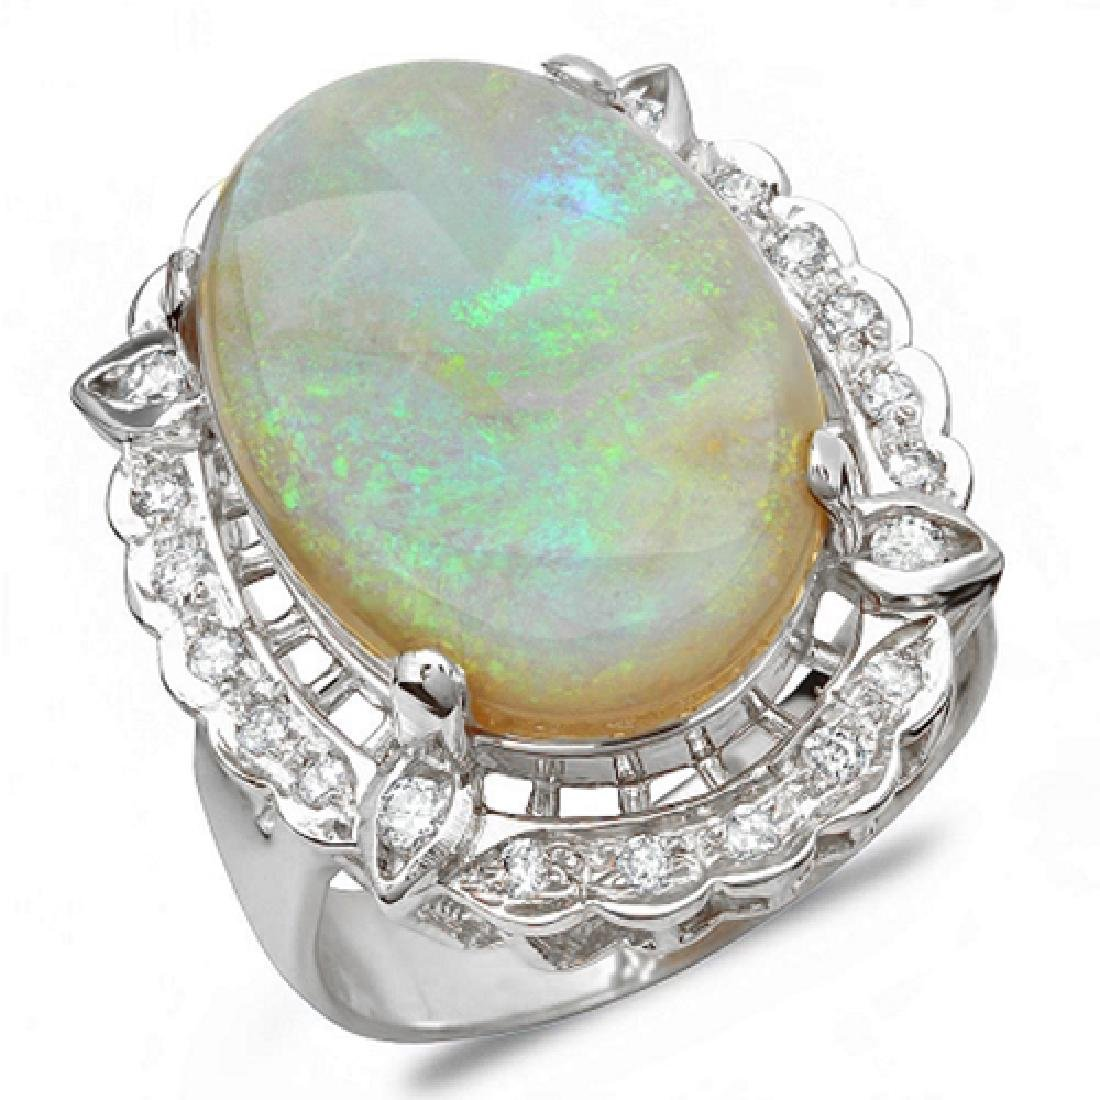 12.38 Carat Natural Opal 18K Solid White Gold Diamond